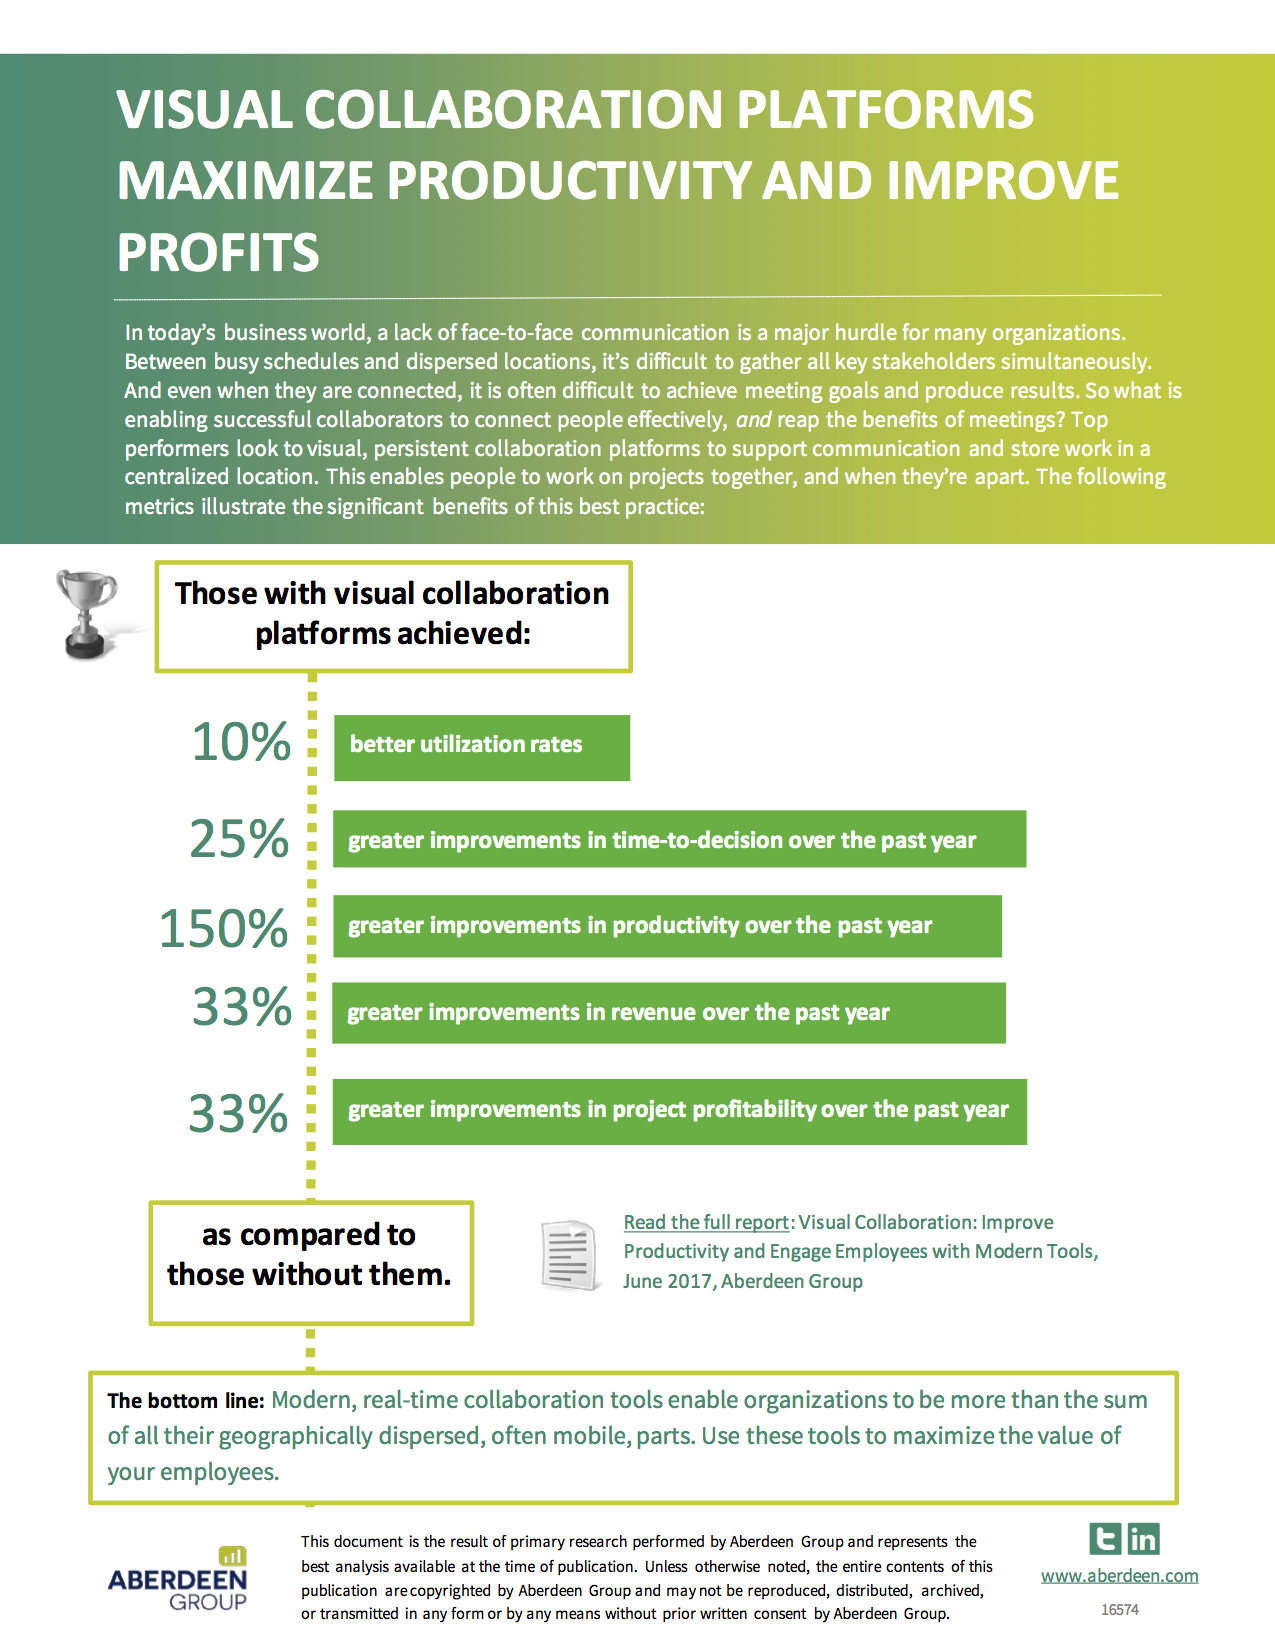 Visual Collaboration Platforms Maximize Productivity and Improve Profits